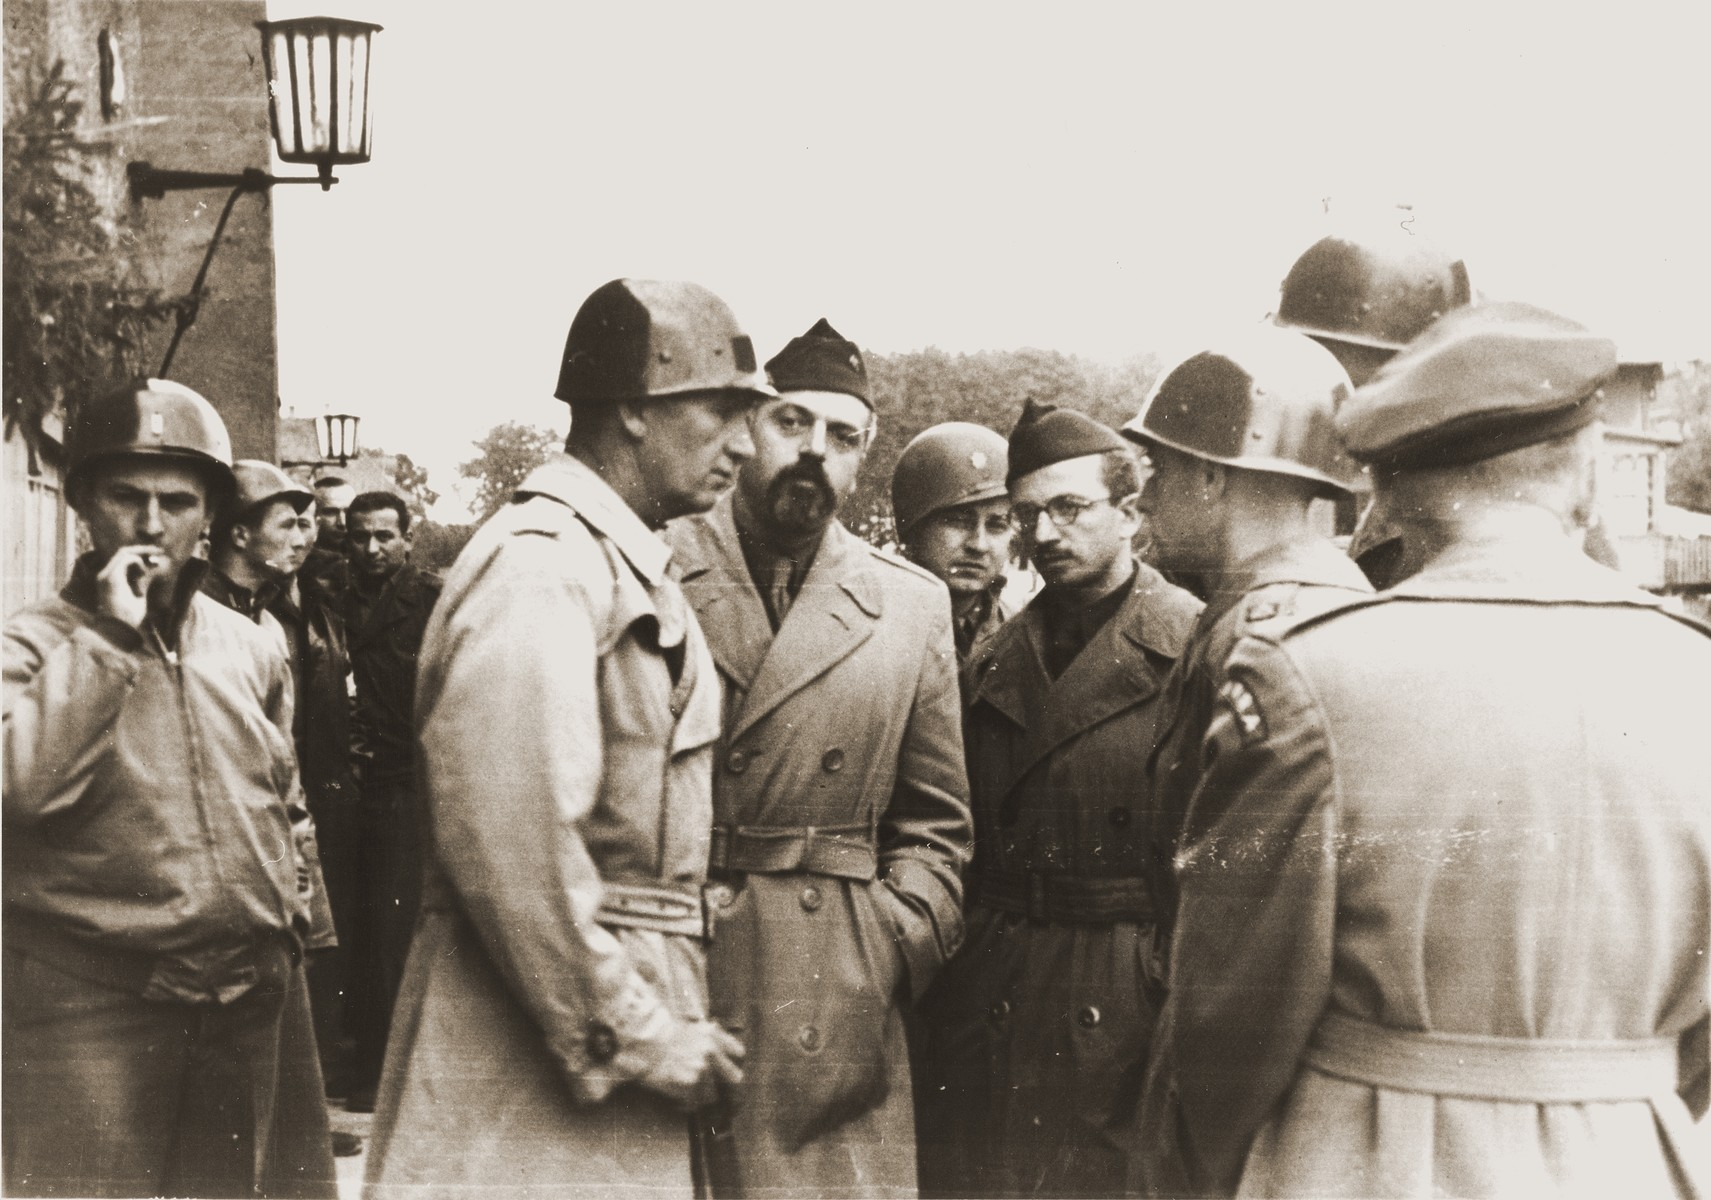 American military officers meet with officials from UNRRA and the Joint Distribution Committee in the Landsberg displaced persons camp.   Pictured from left to right are: Captain David Trott, Rabbi Abraham Rosenberg from the JDC, Hy Stuchin from the Canadian Joint Distribution Committee, and Mr. Craddock director of UNRRA.  Also pictured are Major Irving Heymont and General William McBride.